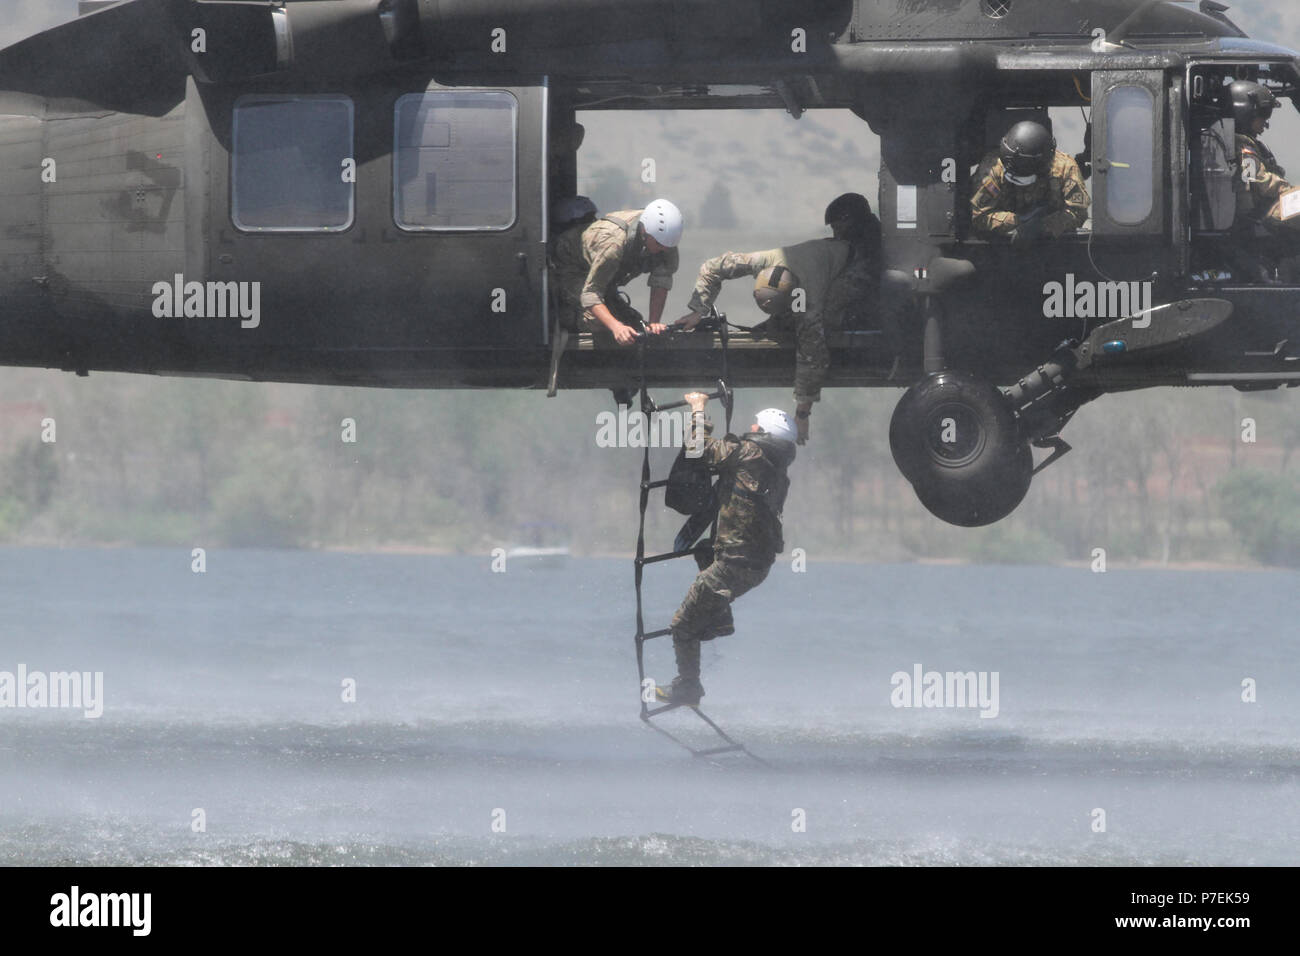 A soldier from 10th Special Forces Group (Airborne) climbs a ladder during water extraction training on Chatfield Reservoir near Littleton, Colo., June 29, 2018. This waterborne training event gave green berets the opportunity to train on unconventional infiltration and exfiltration tactics, thereby sharpening the unit's ability to operate on land, sea, and air. - Stock Image